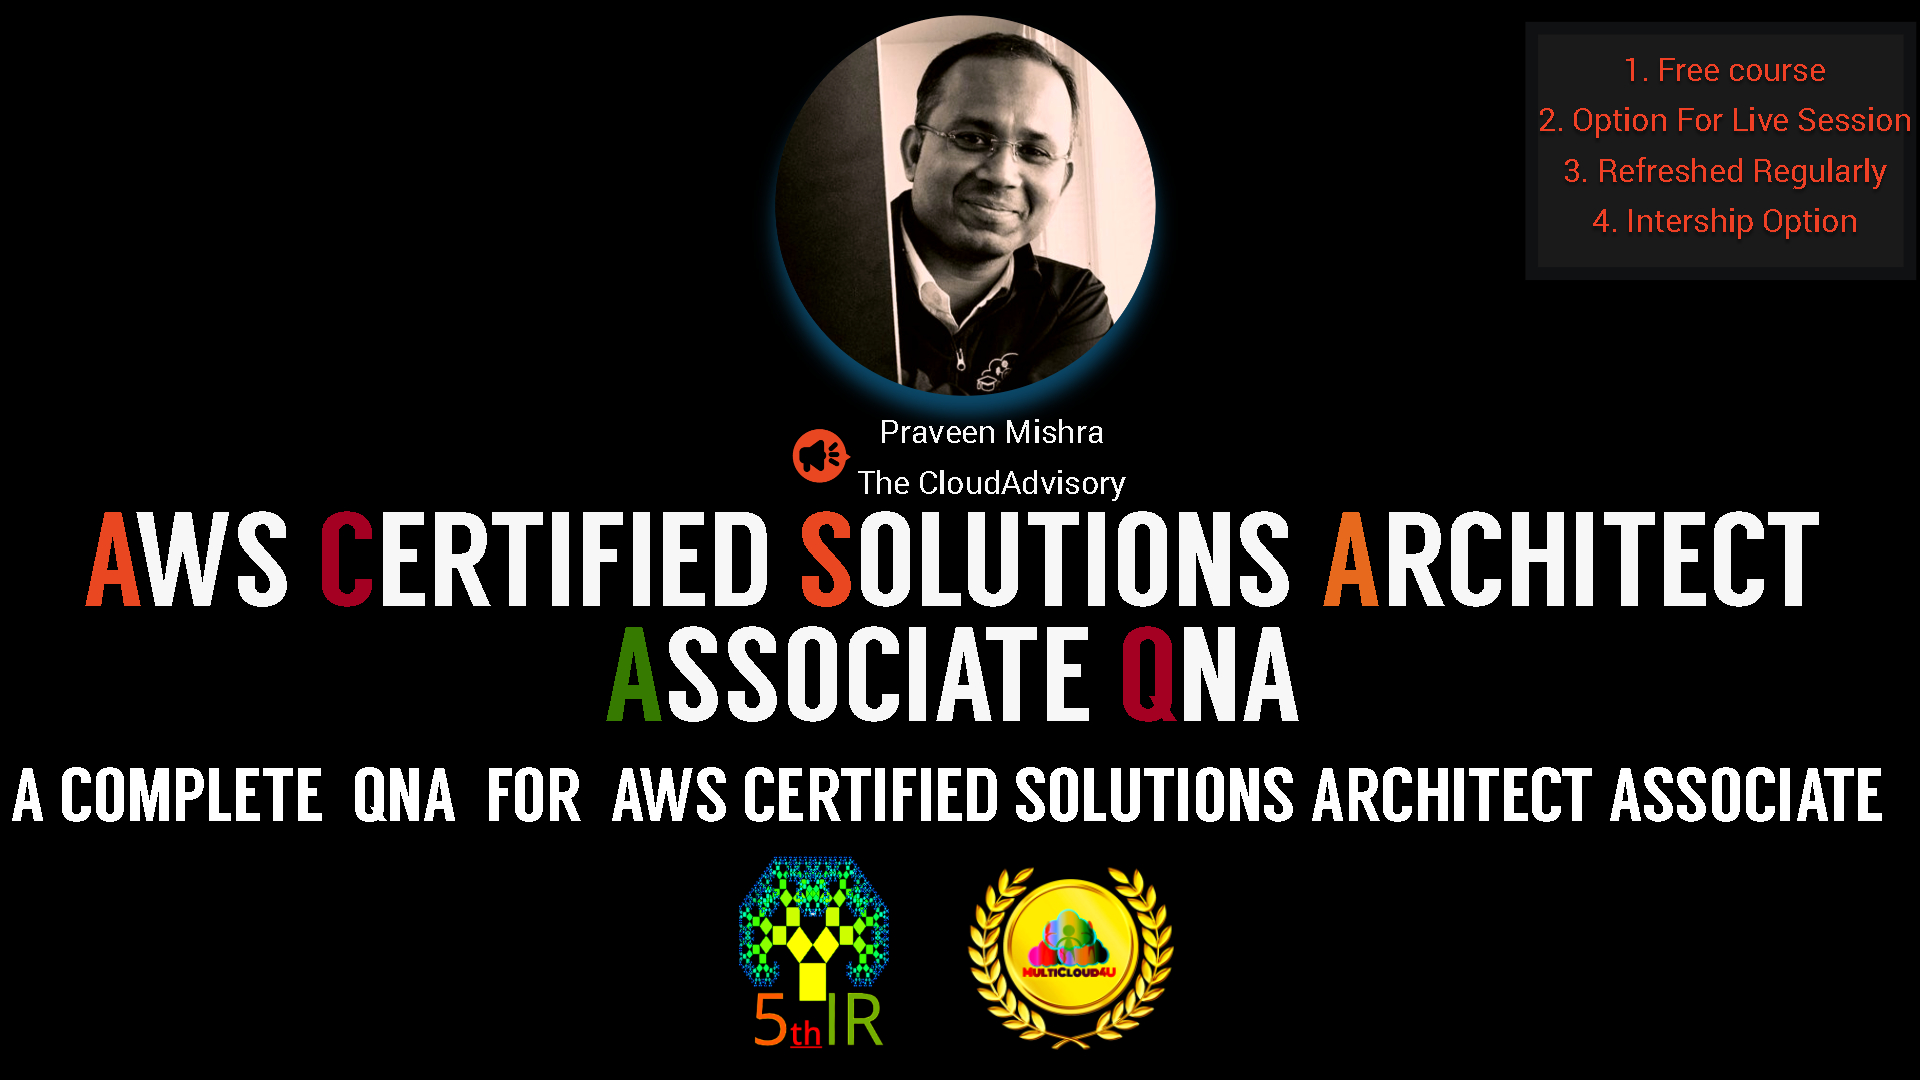 AWS Certified Solutions Architect Associate QNA Complete